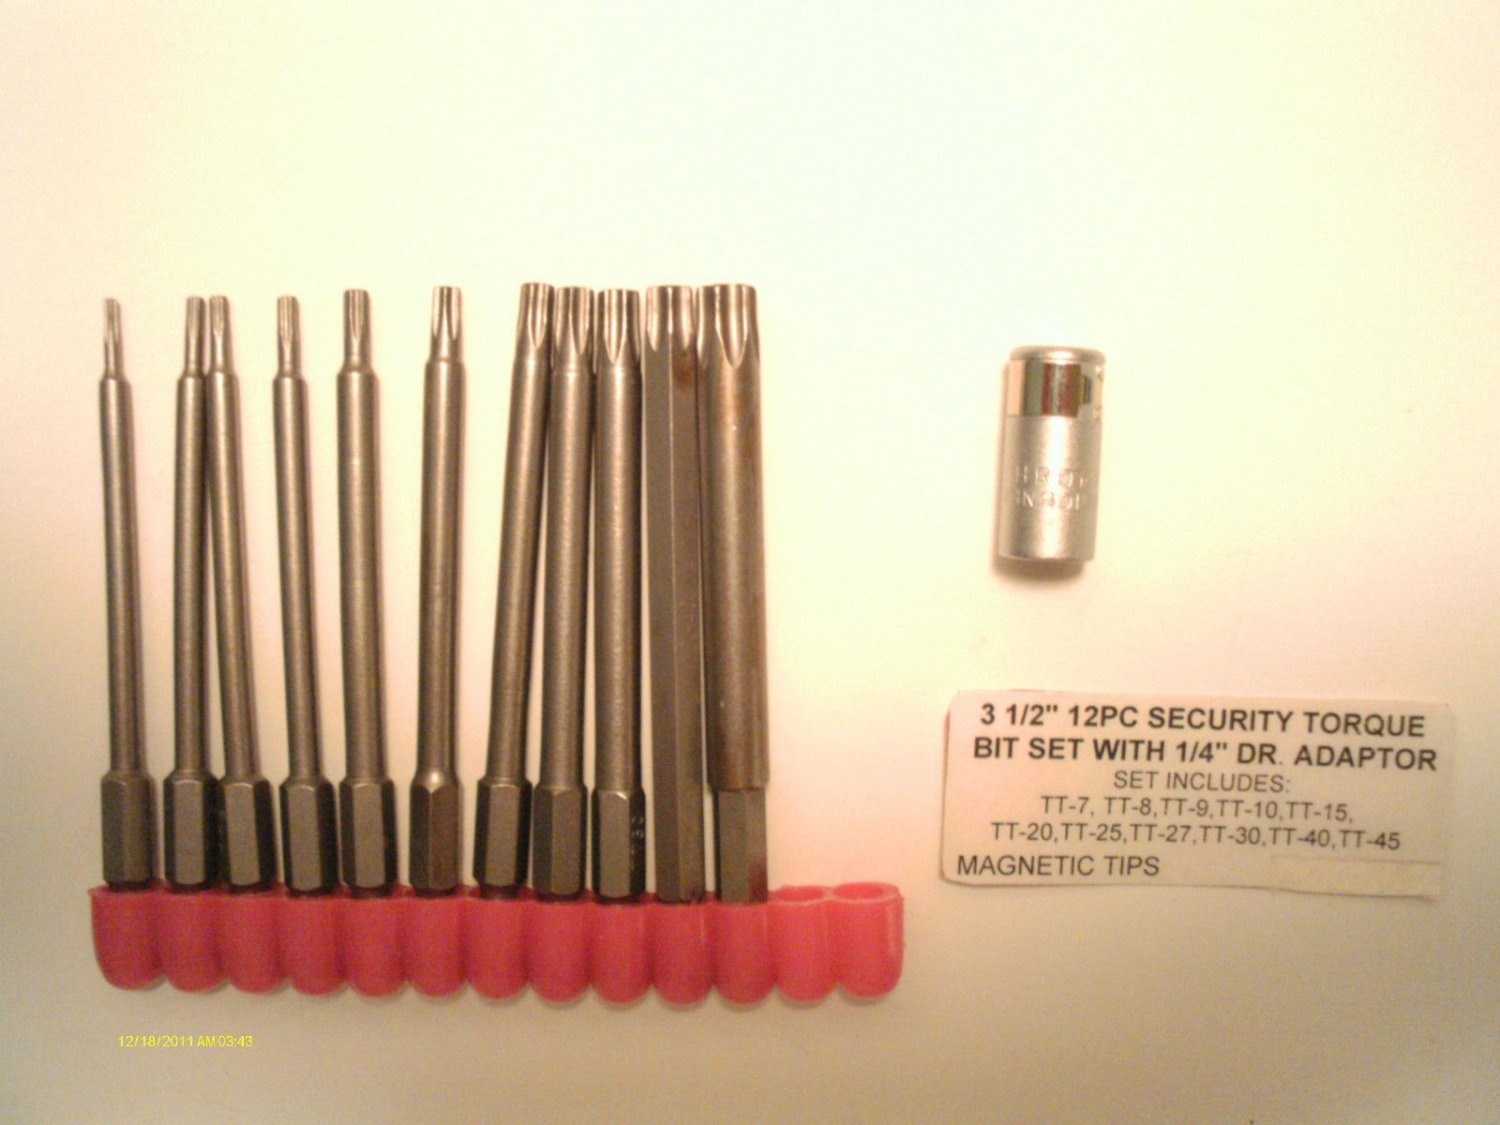 "3 1/2"" MAGNETIC 12pc SECURITY TORX BIT SET 7-8-9-10-15-20-25-27-30-40-45"